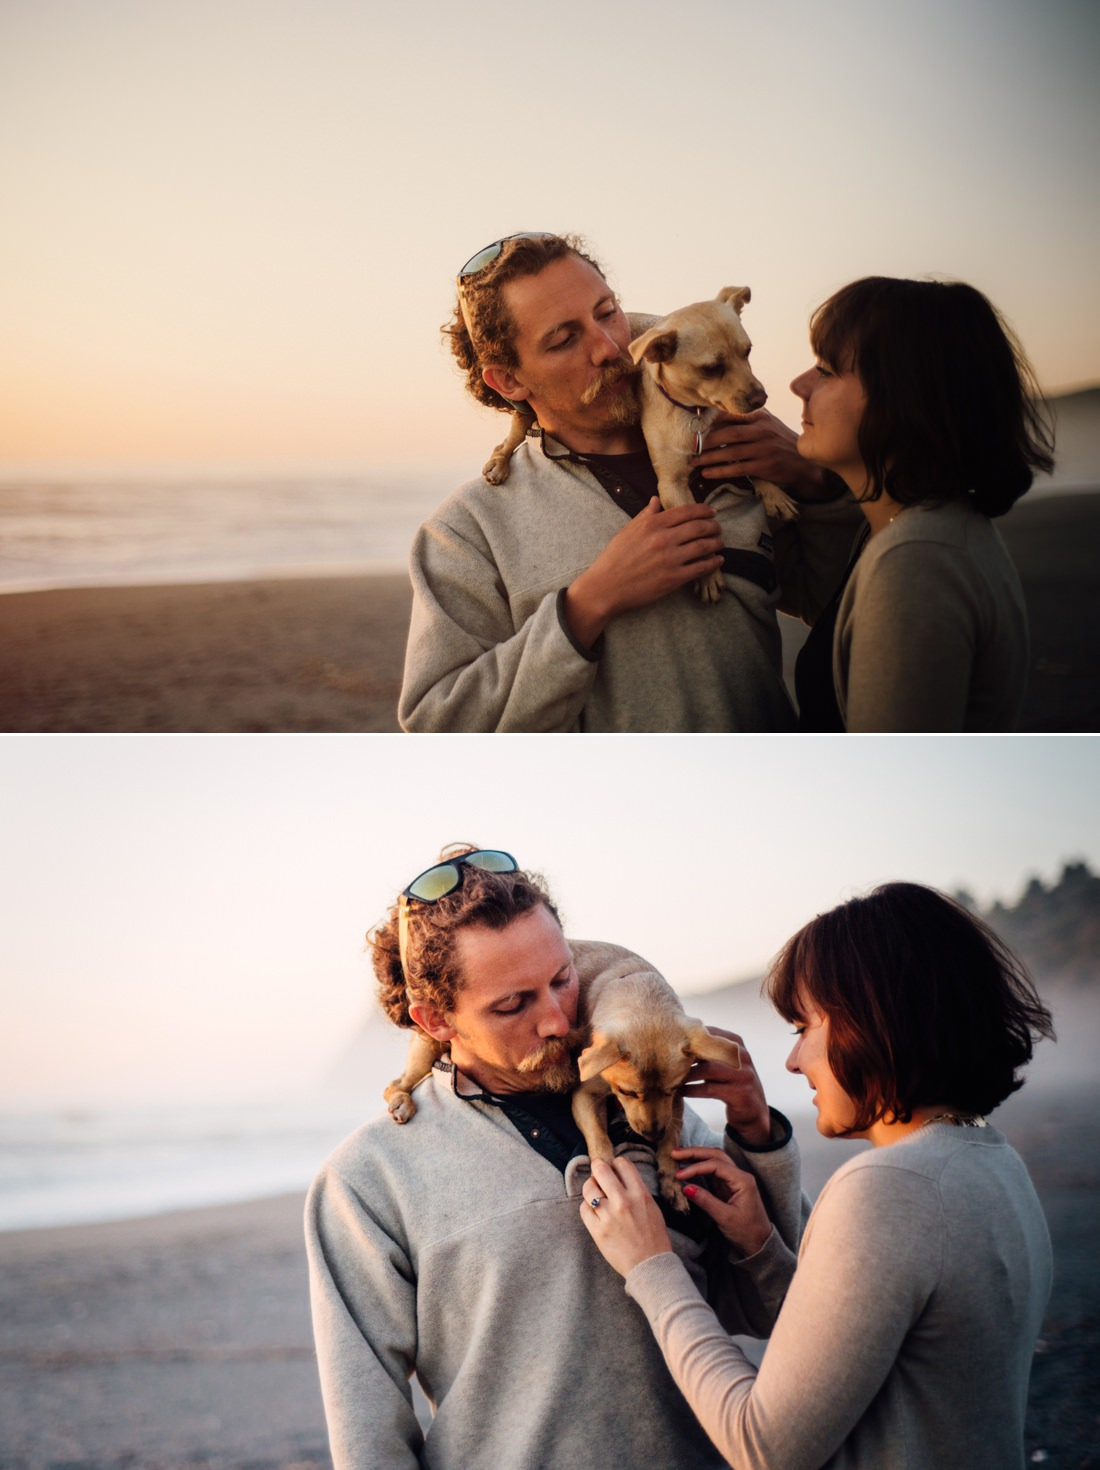 Laid back Trinidad engagement session in Dry Creek - complete with adorable dog. Photographed by Humboldt County Wedding Photographer Kate Donaldson Photography